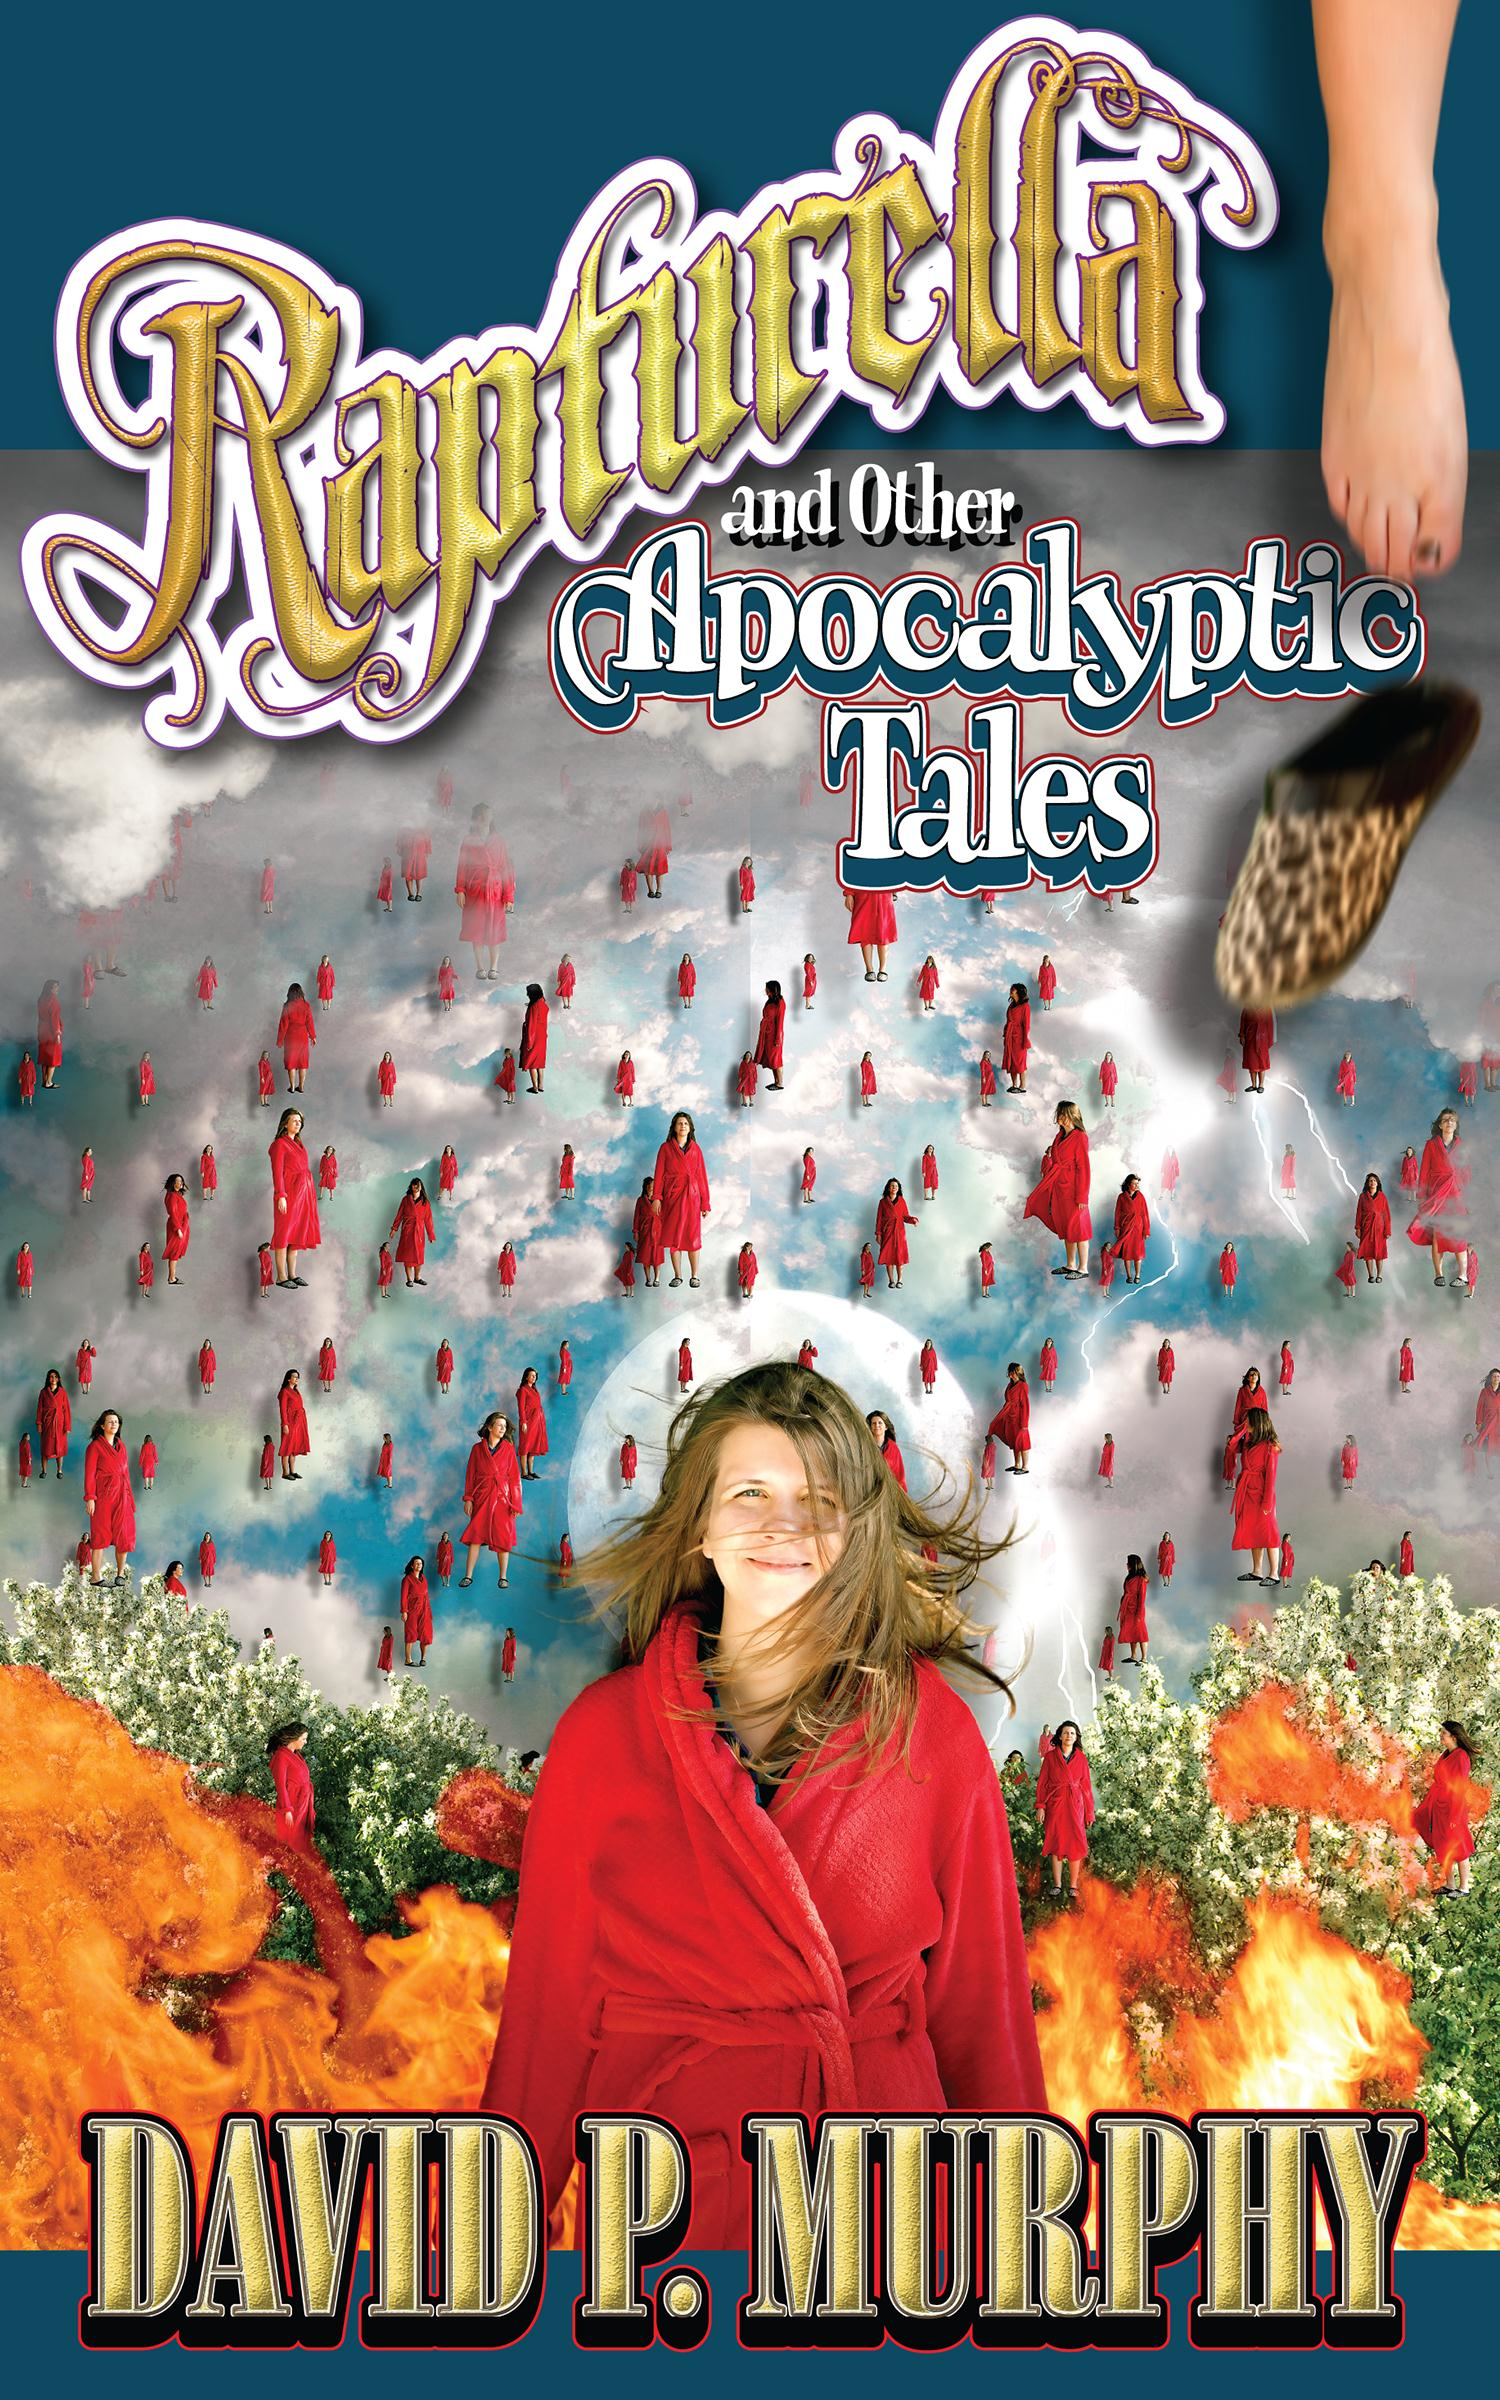 Rapturella and Other Apocalyptic Tales